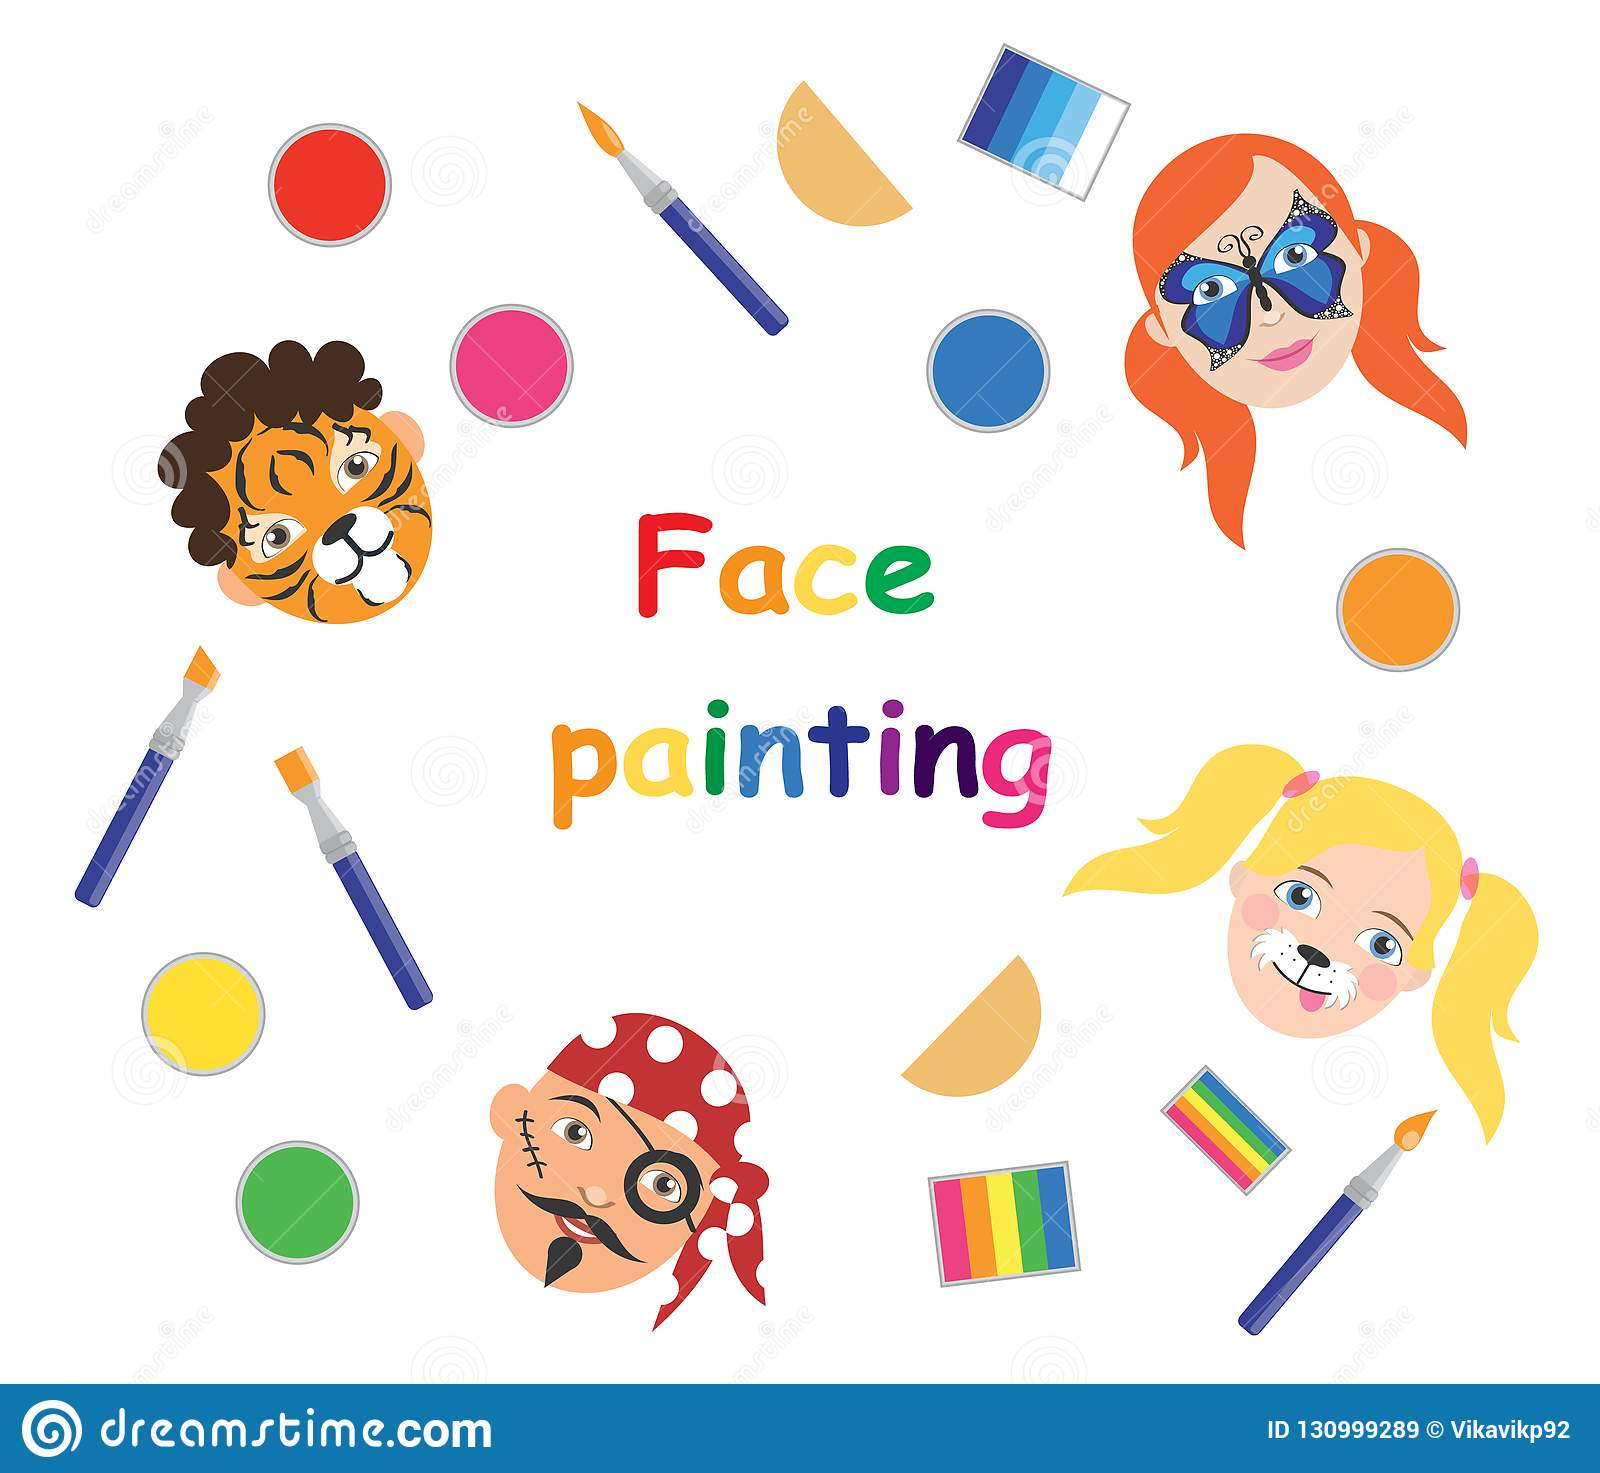 Face painting for kids poster collection vector illustration eps10